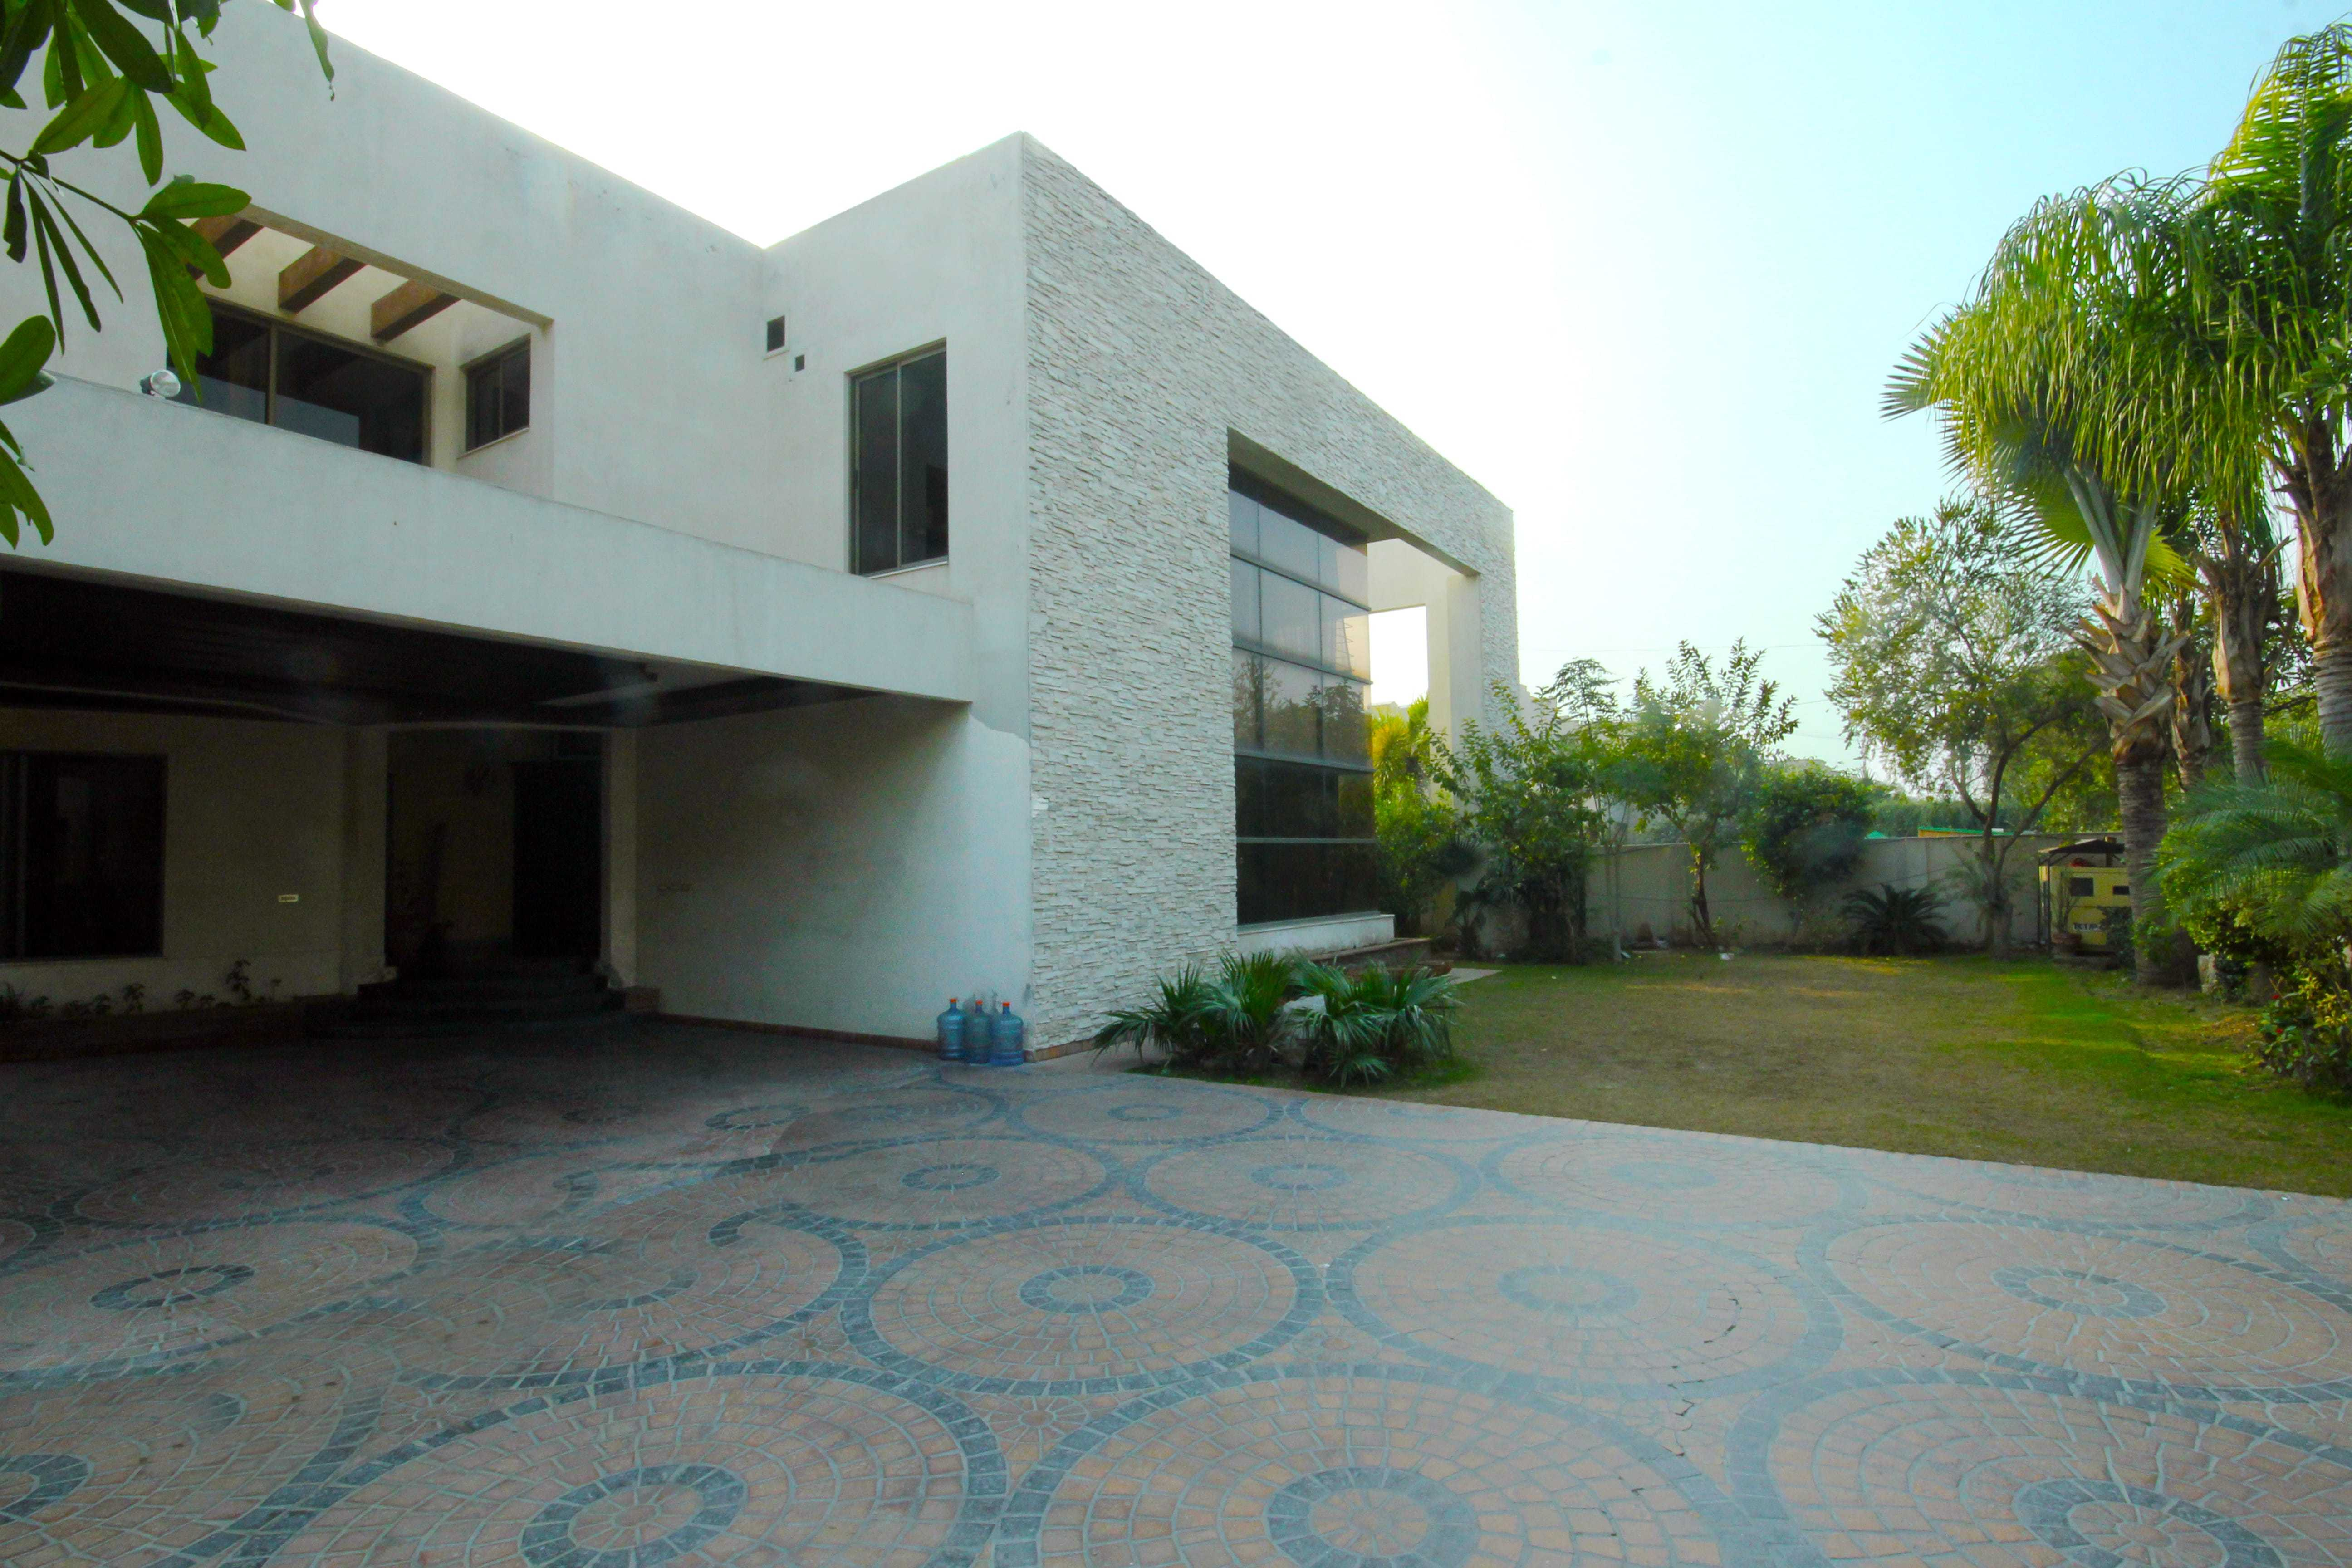 2 KANAL, Self-Constructed Well Maintained Bungalow SUI NORTHERN HOUSING SOCIETY Lahore